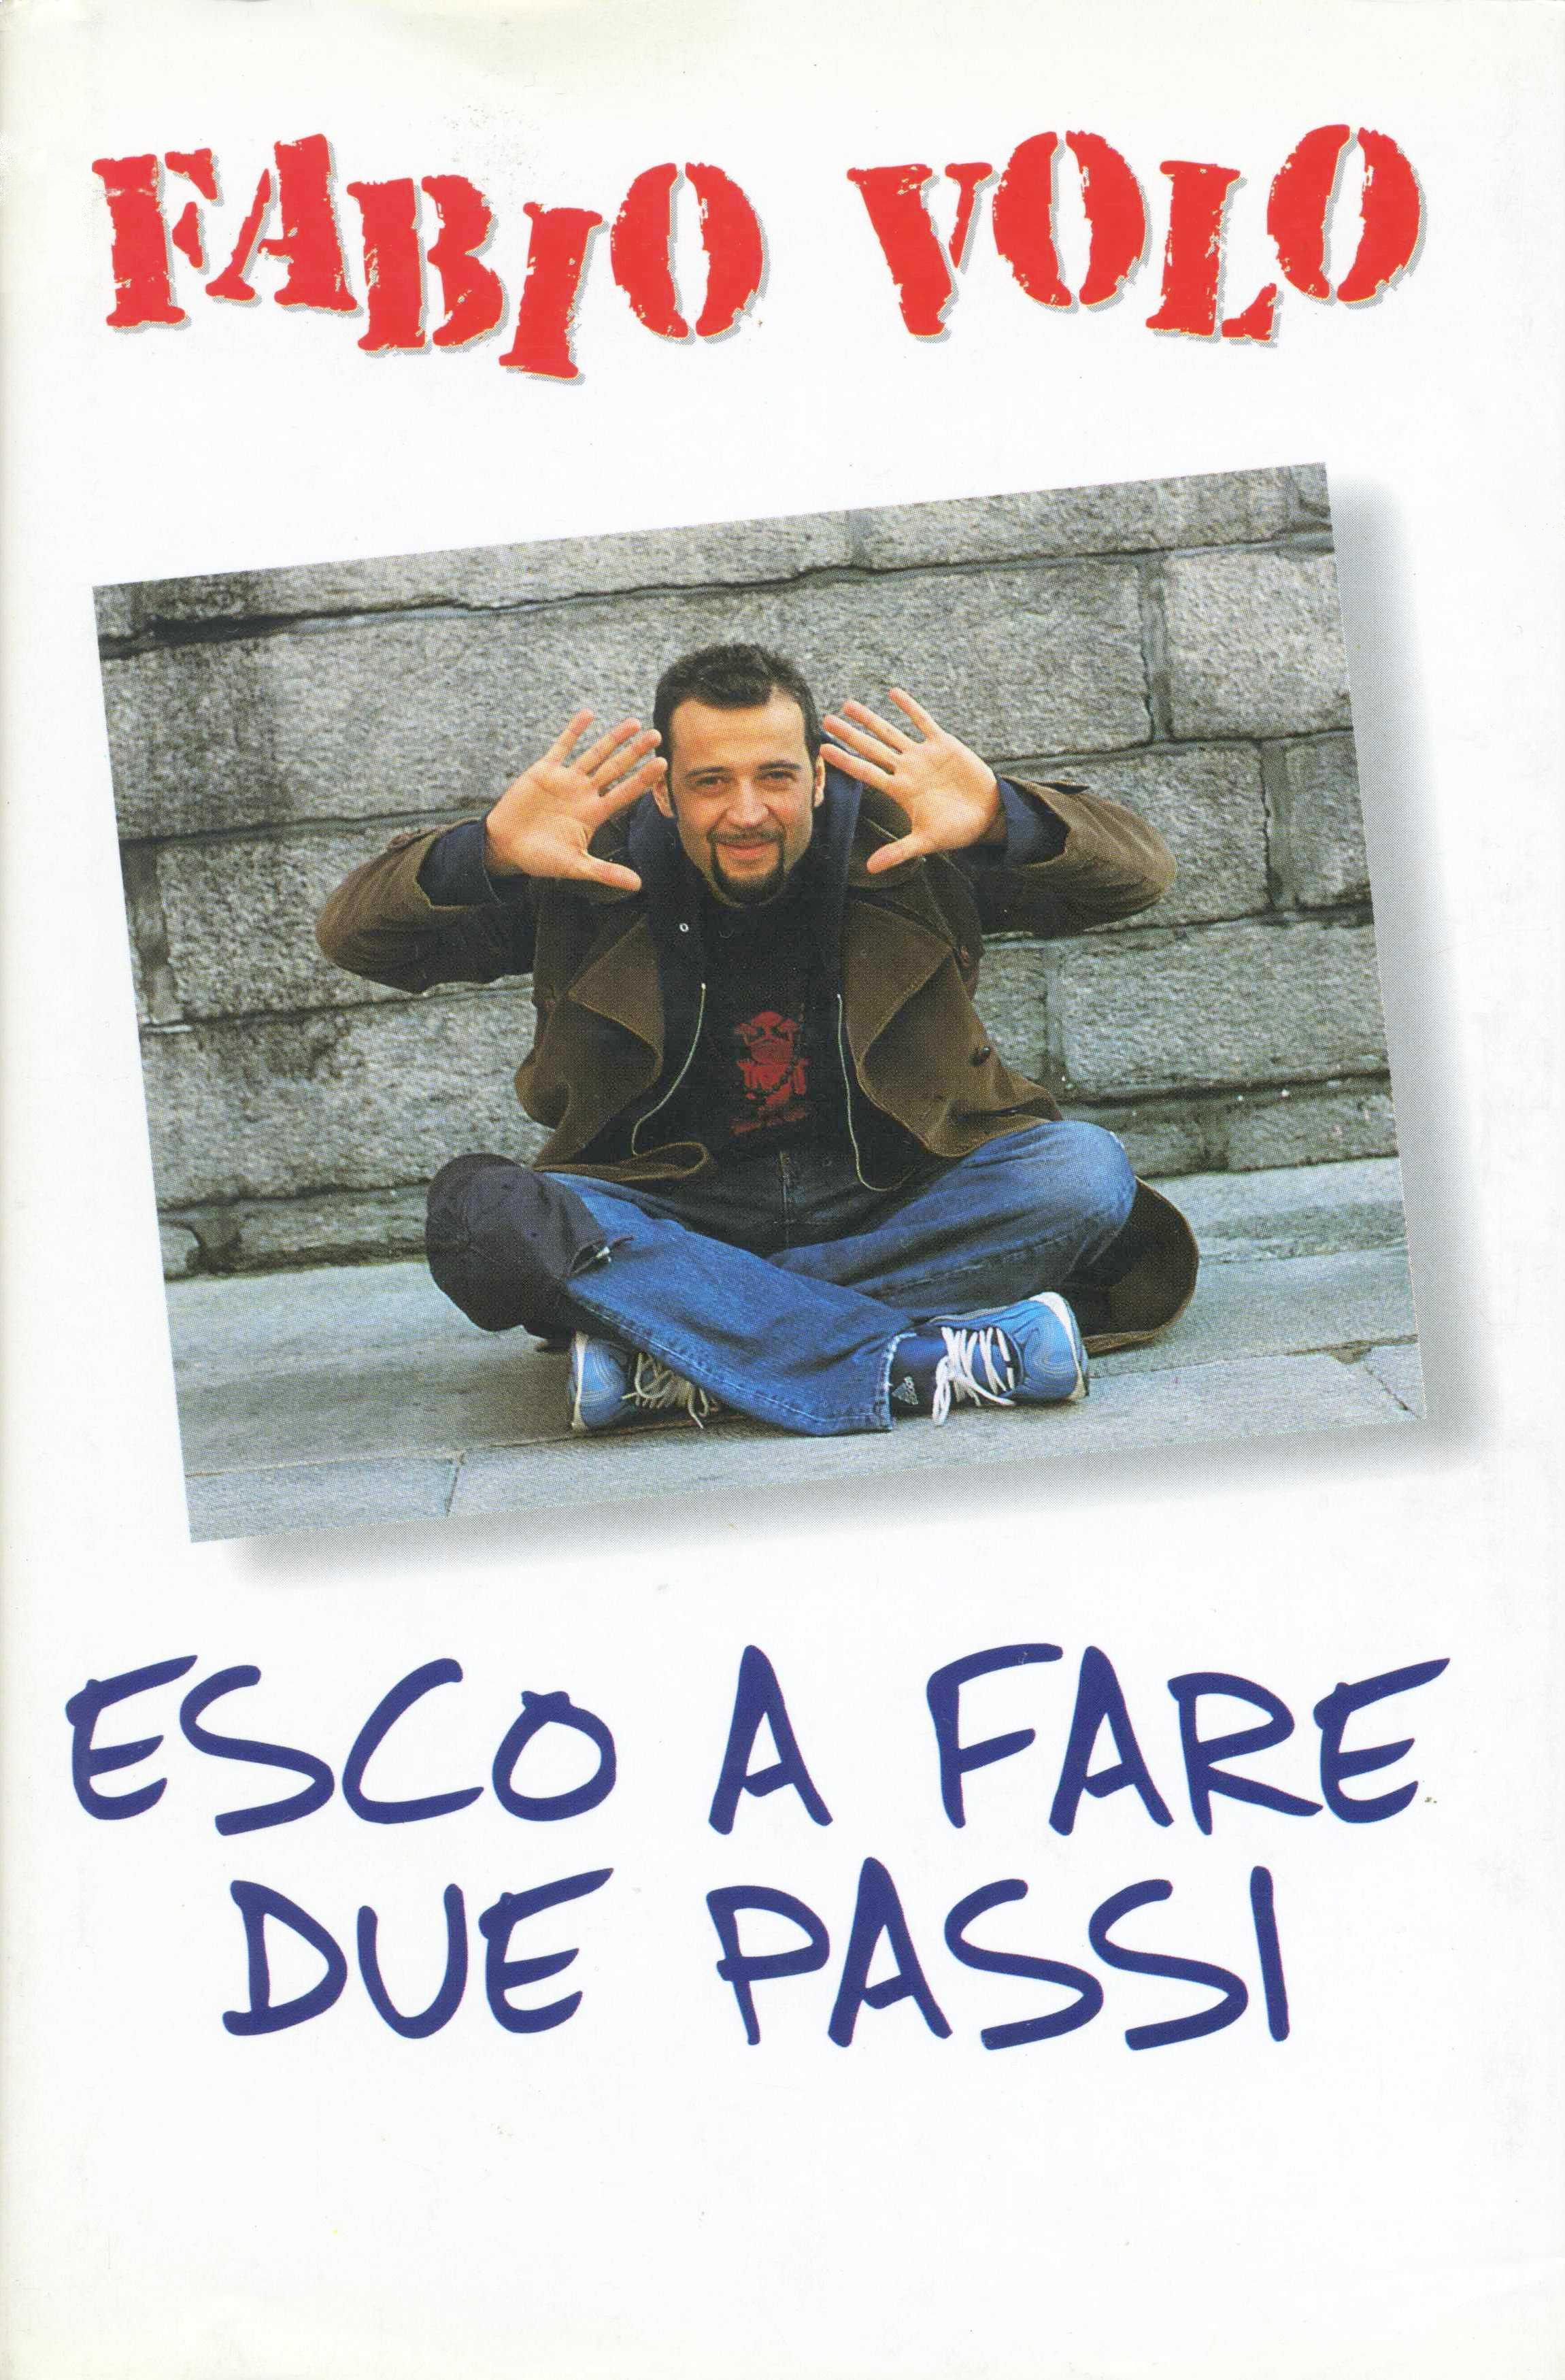 Esco a fare due pass...